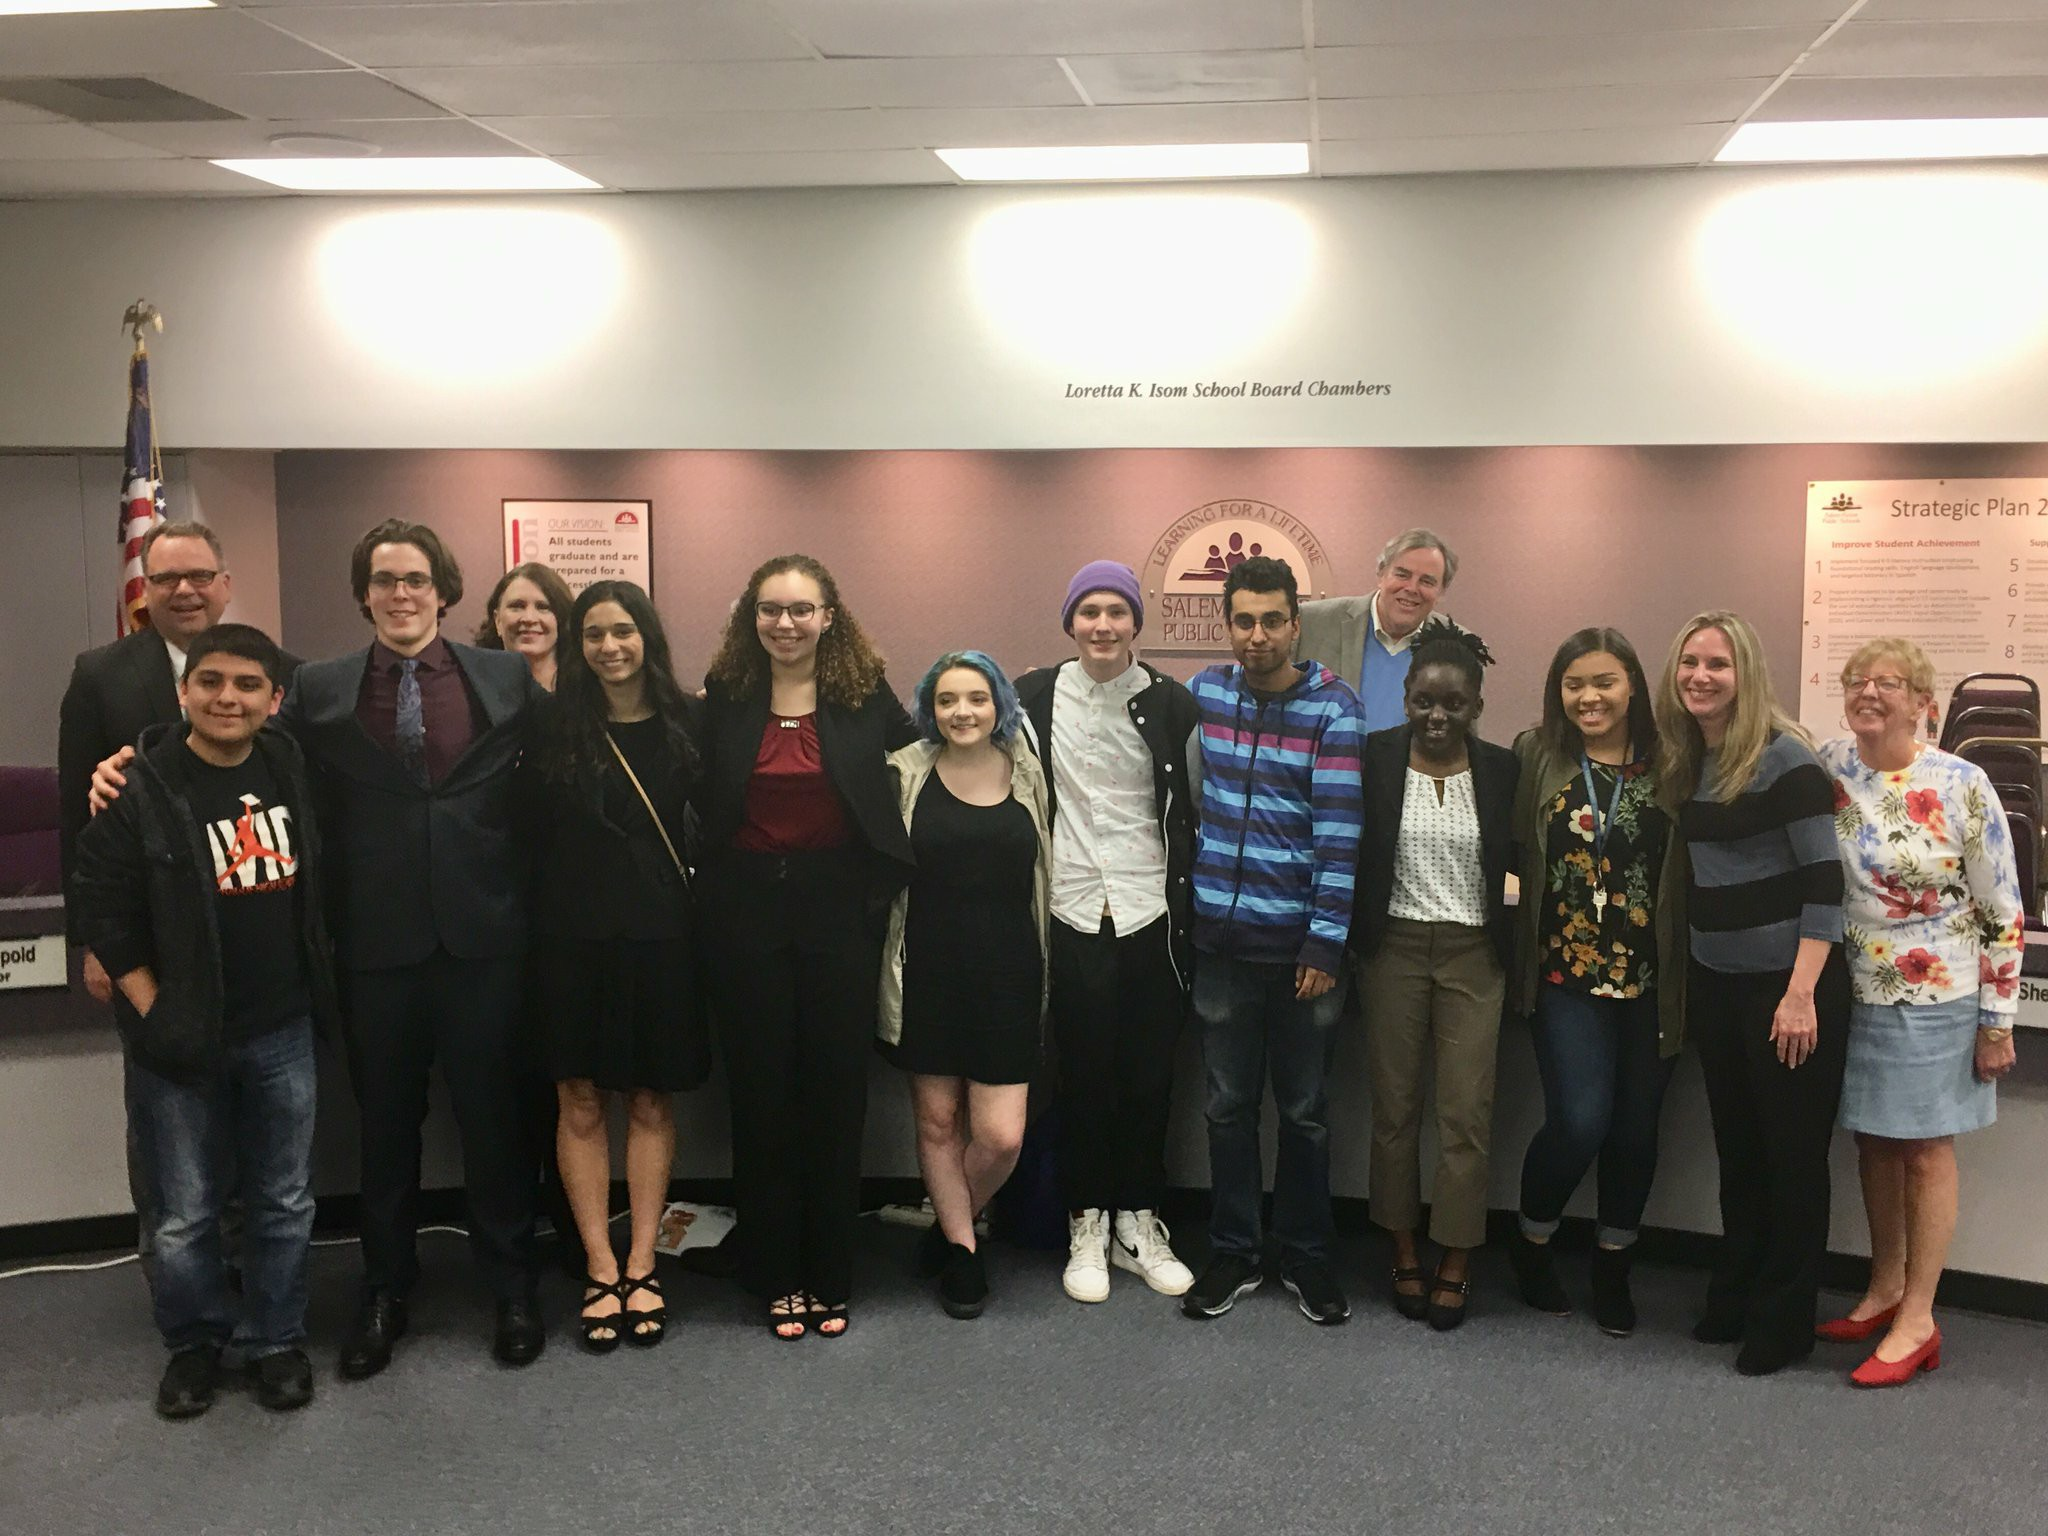 20180410 school board with equity group.jpg